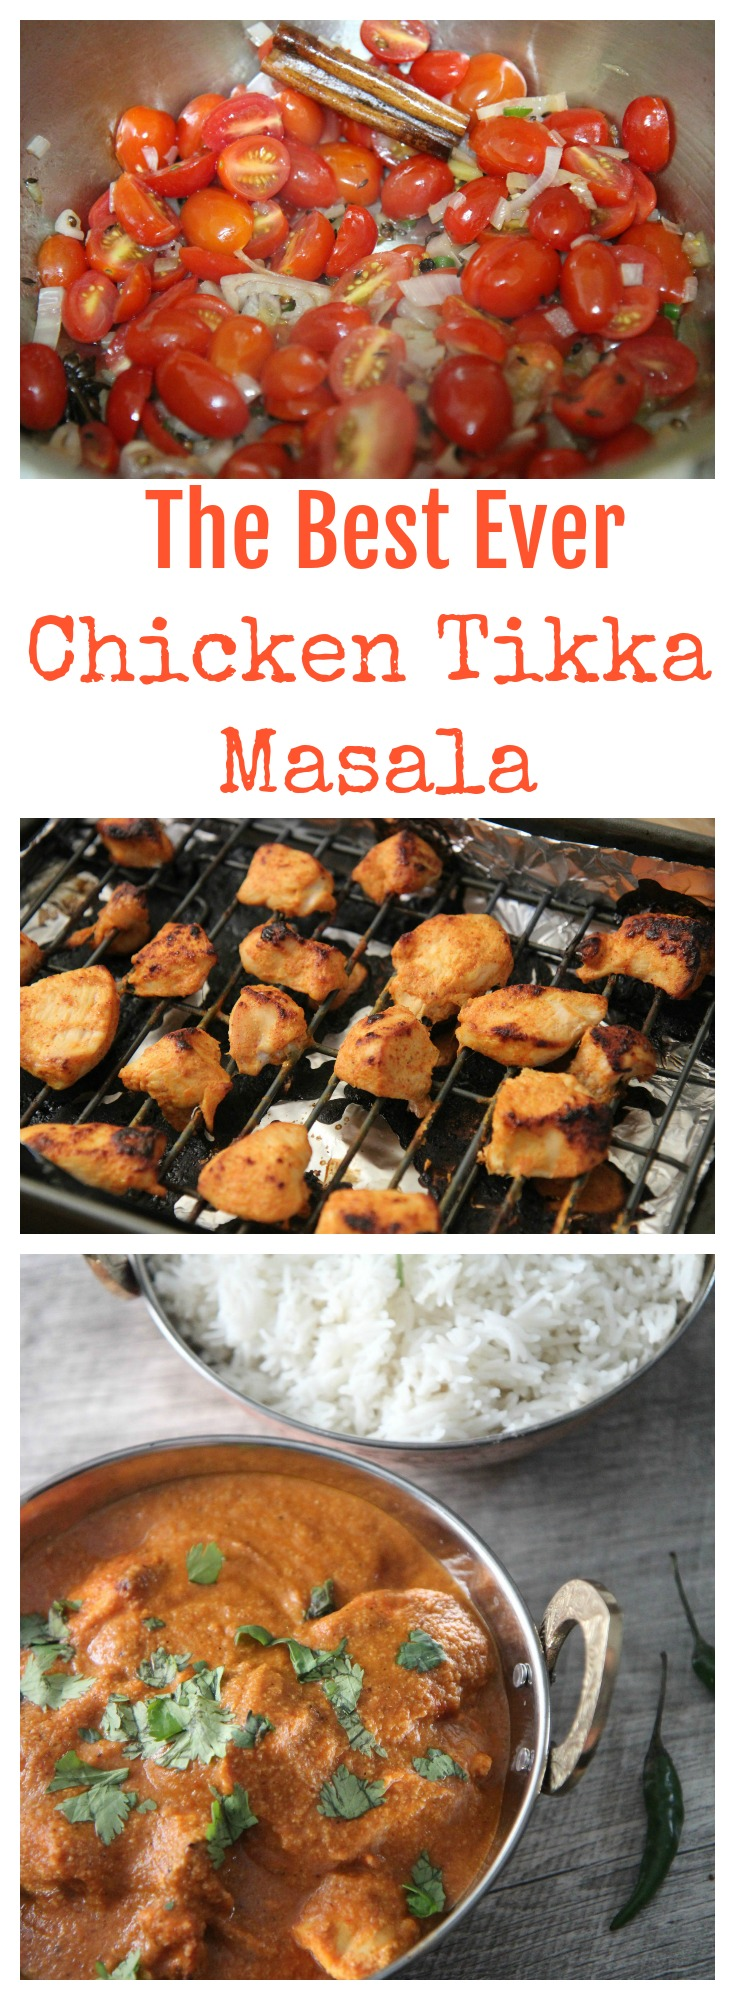 Learn how to make Chicken Tikka Masala at CookedByJulie.com